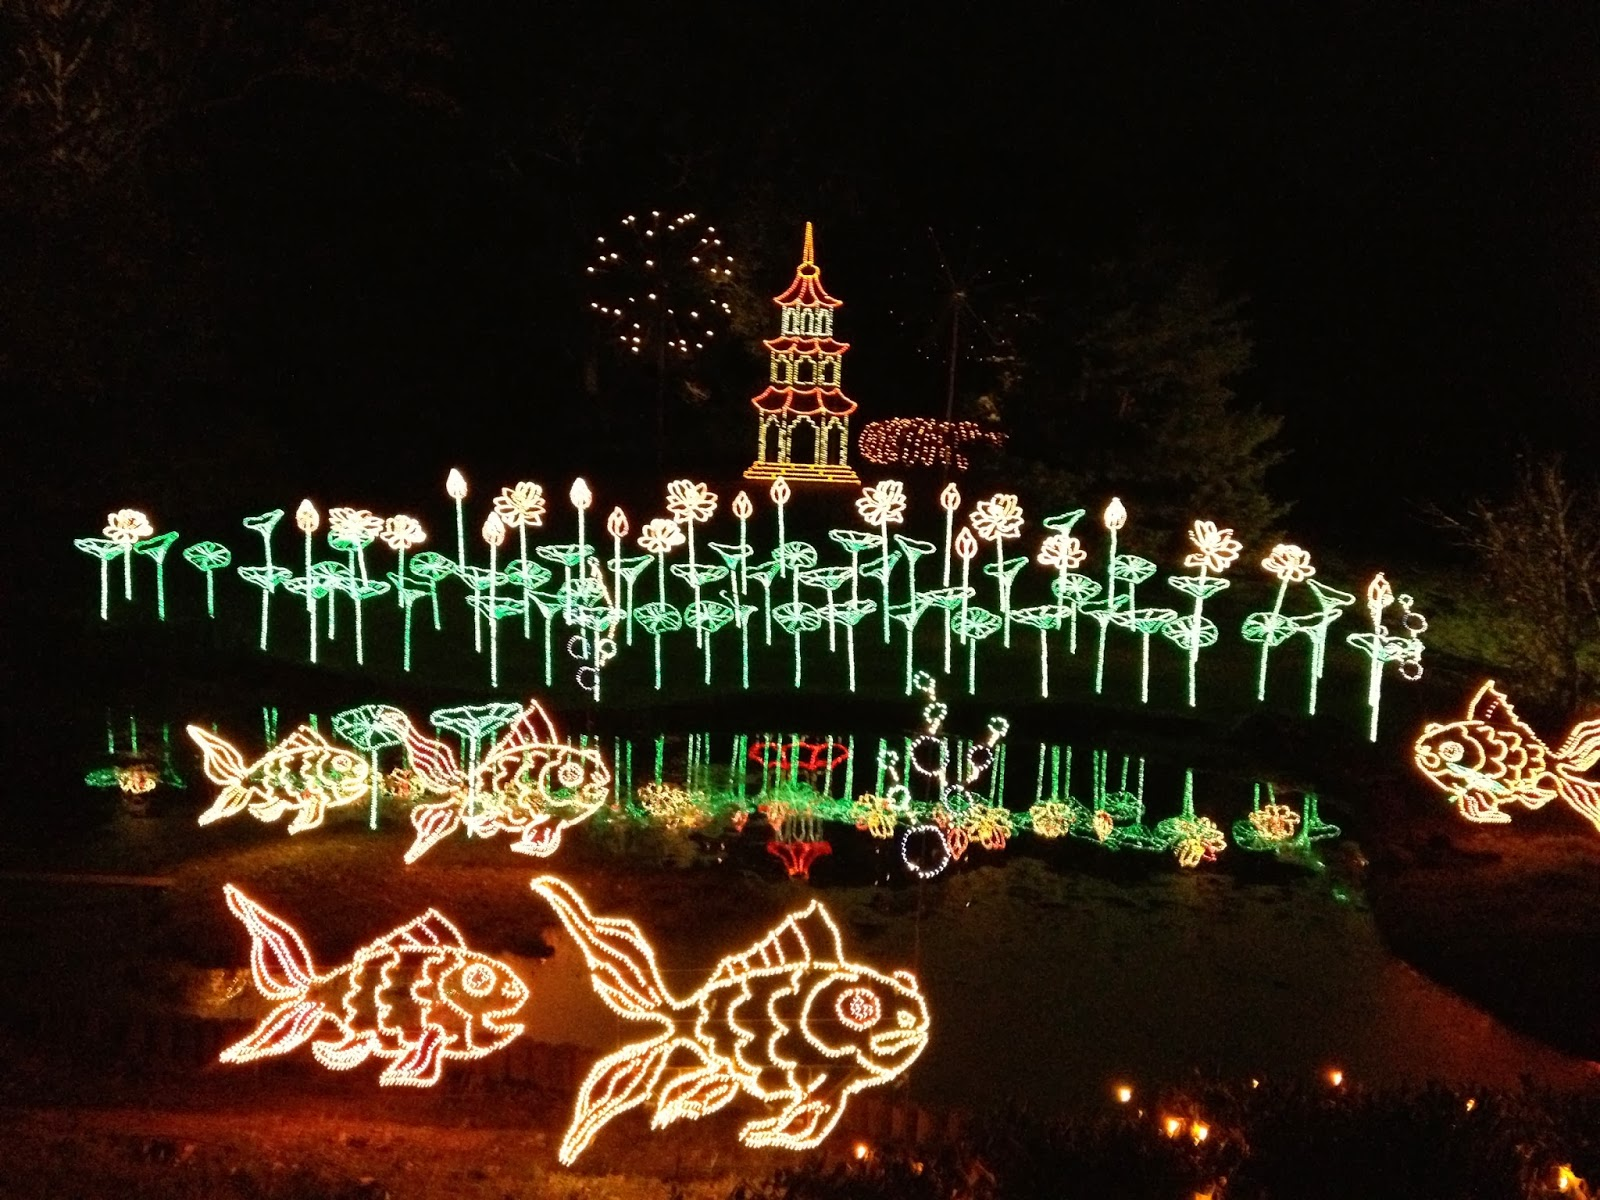 Adventures of luck of a fool november 17 2013 bellingrath gardens for Bellingrath gardens christmas lights 2016